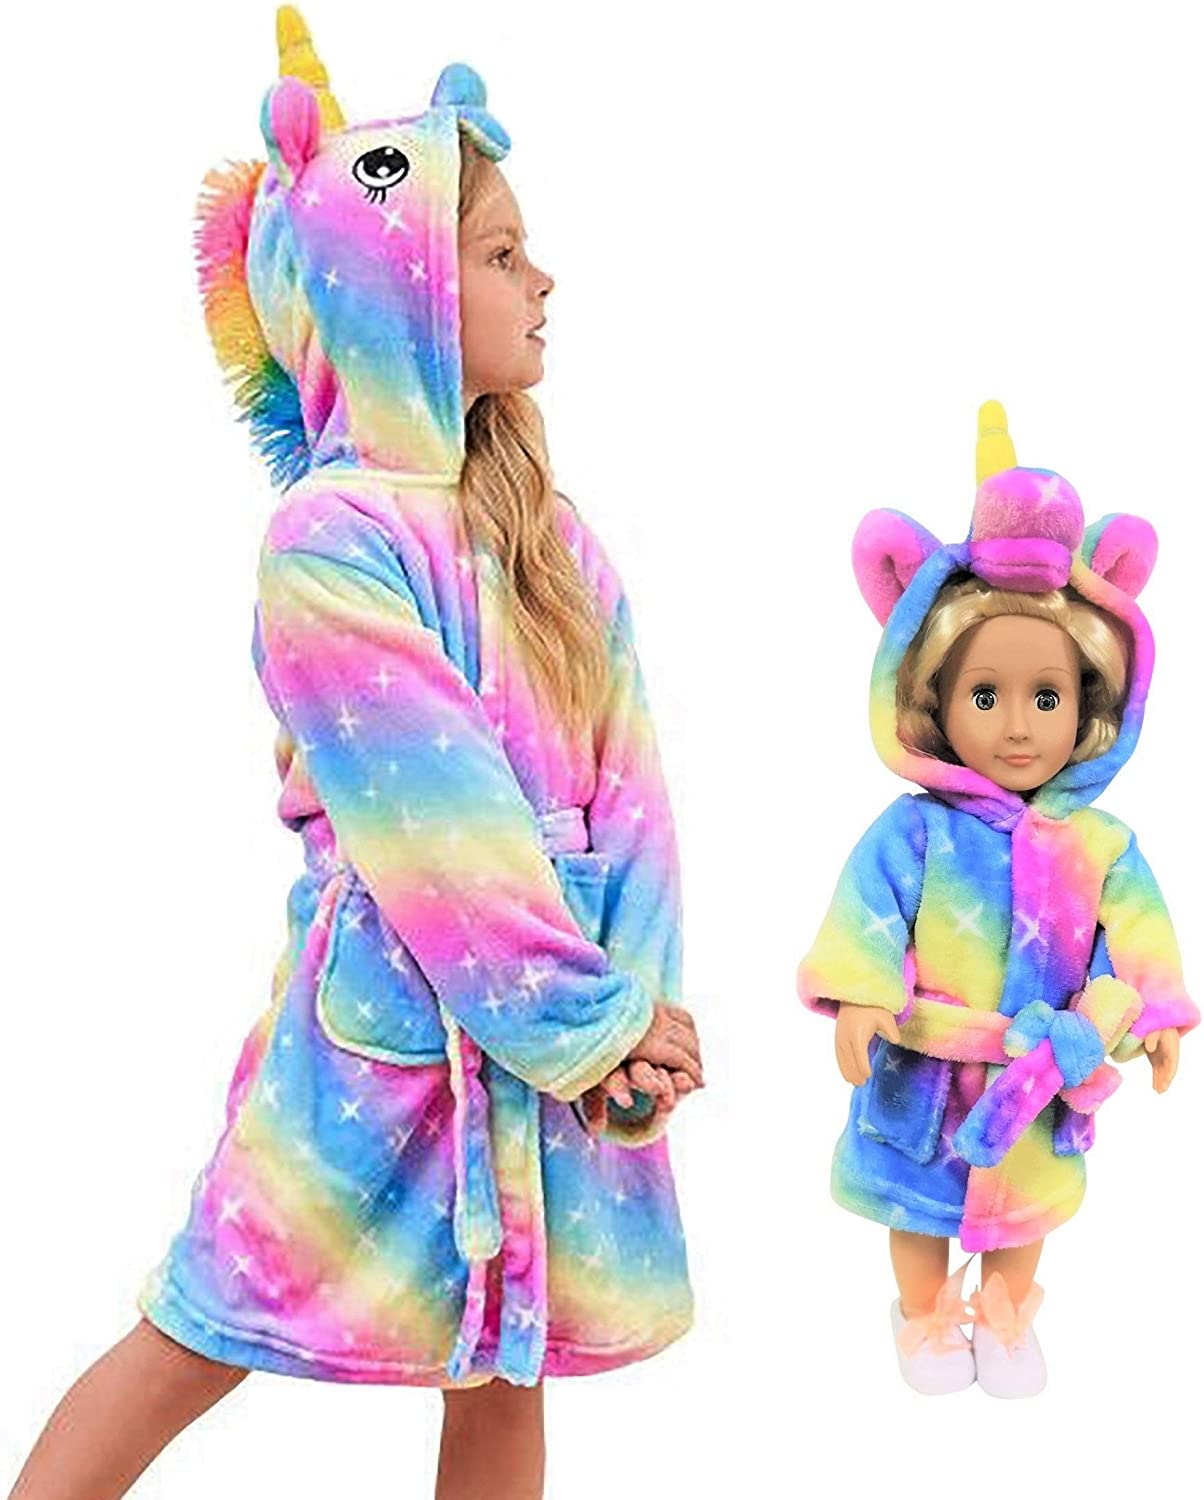 Unicorn Bathrobe Matching Doll & Girls, Unicorn Gifts for Girls: Clothing